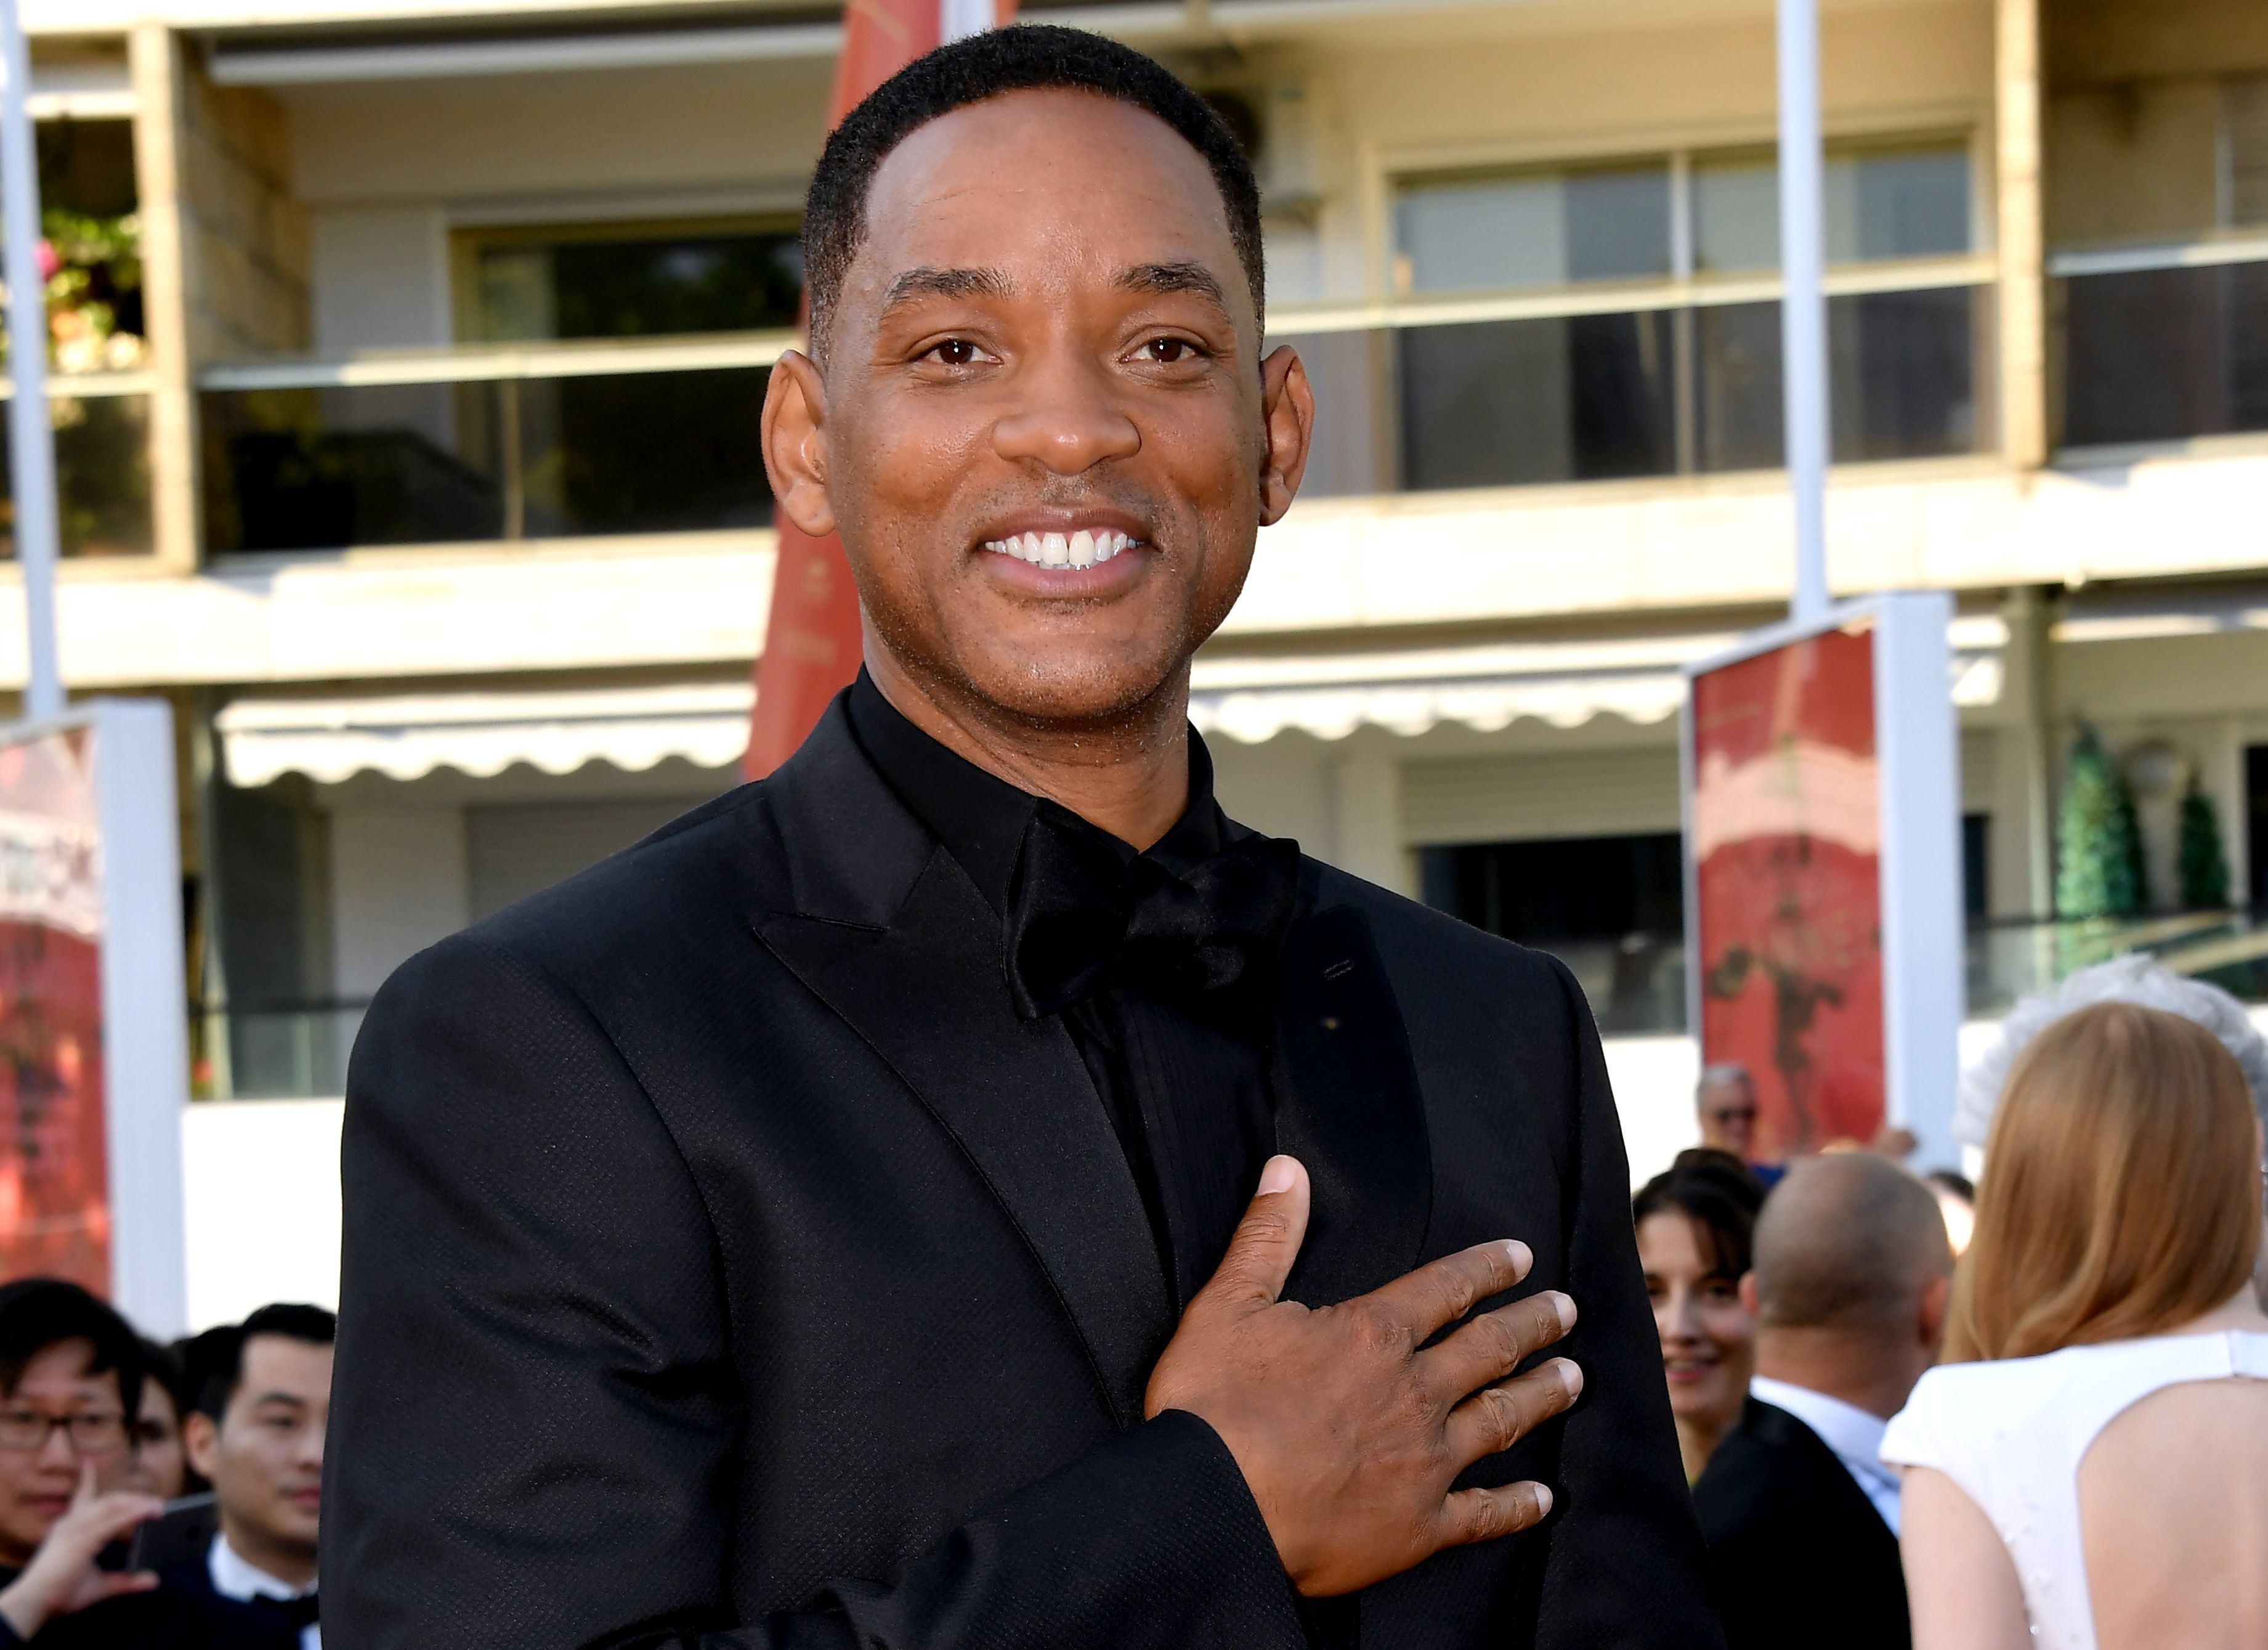 Will SmithClosing Ceremony, 70th Cannes Film Festival, France - 28 May 2017